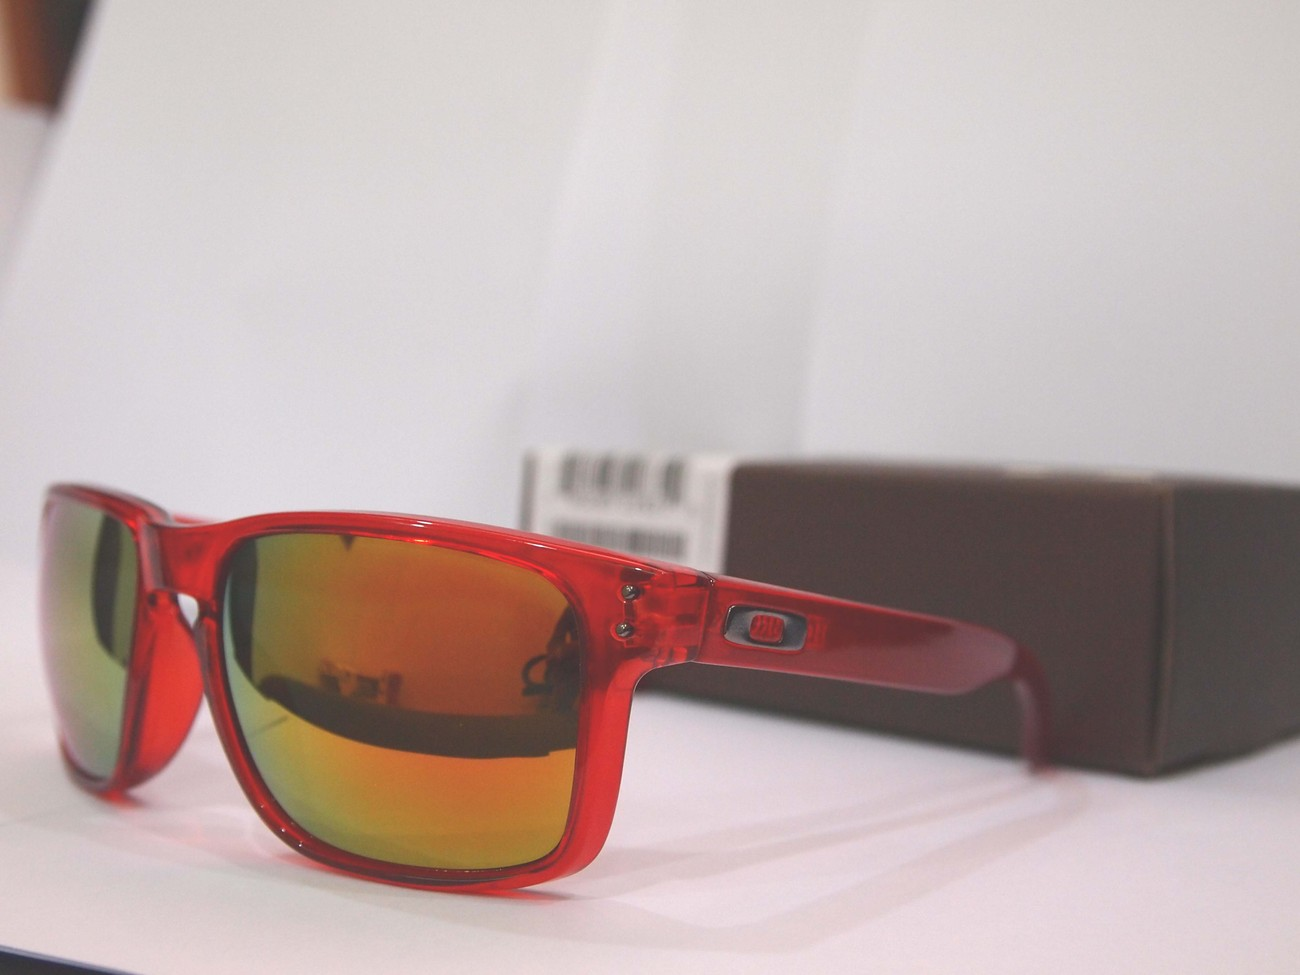 e5c09b93668 Oakley Sunglasses Prices In Malaysia « Heritage Malta